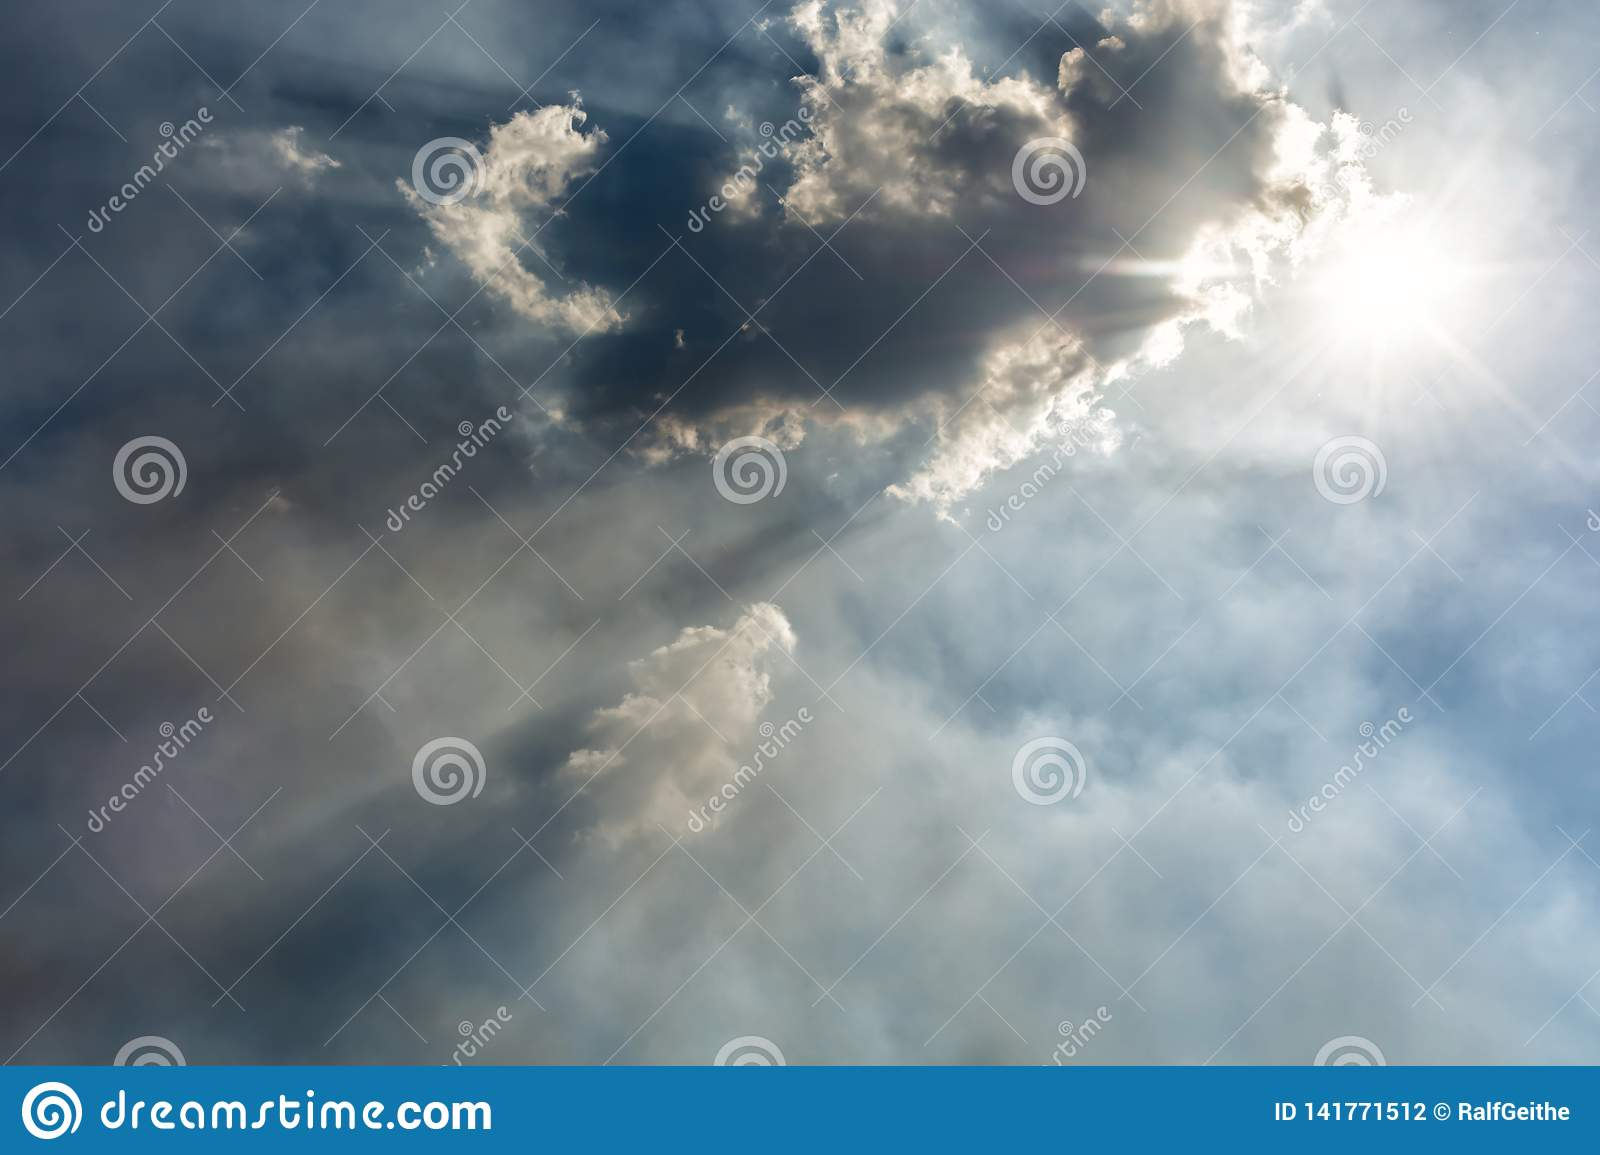 Sunshine clouded by clouds and smog